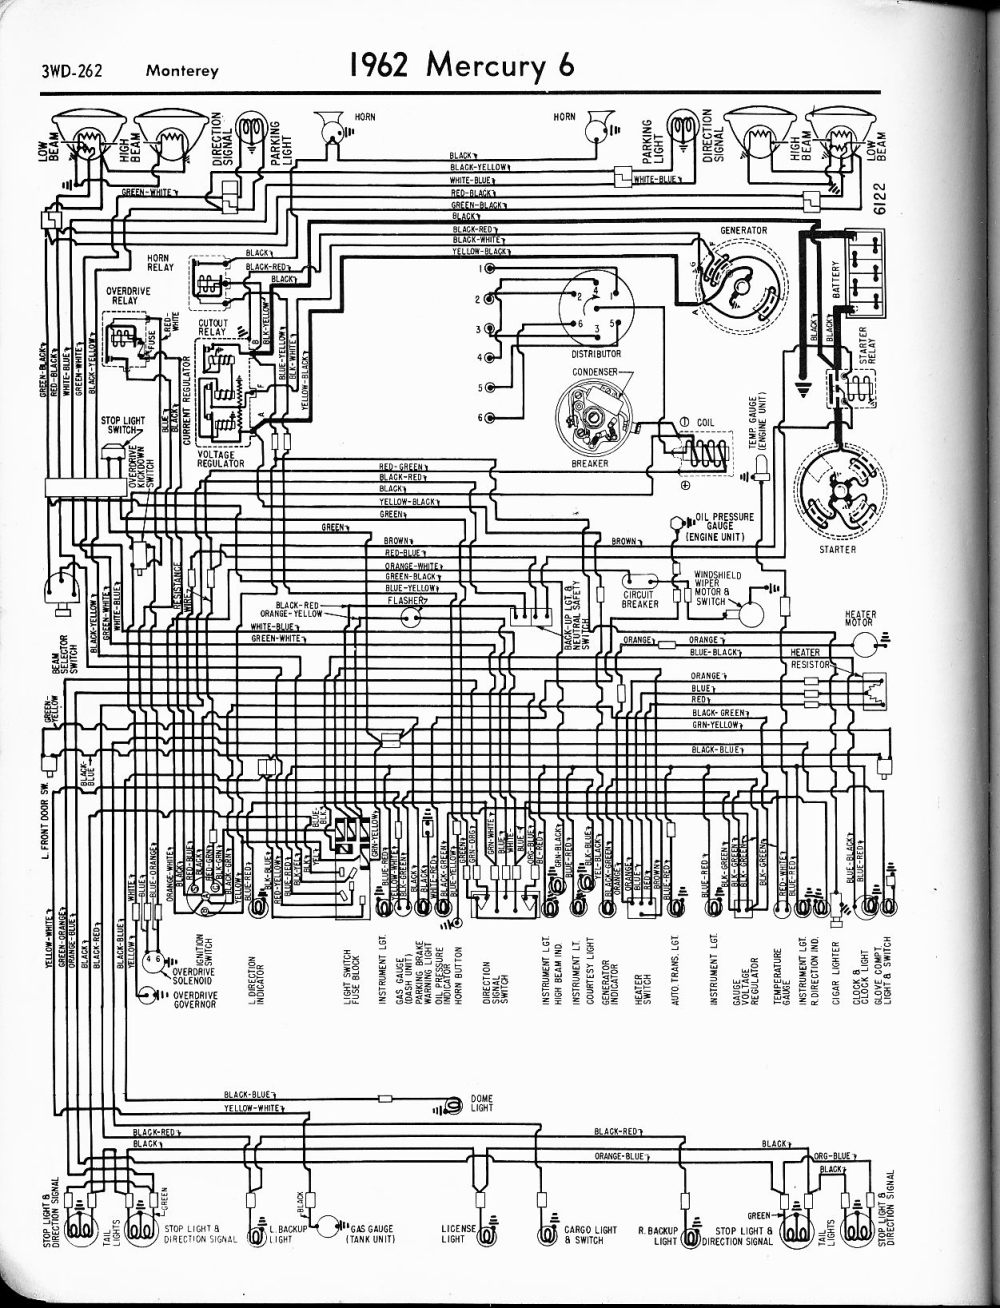 medium resolution of wiring diagram for 2004 mercury monterey manual e book mercury wiring diagrams the old car manual